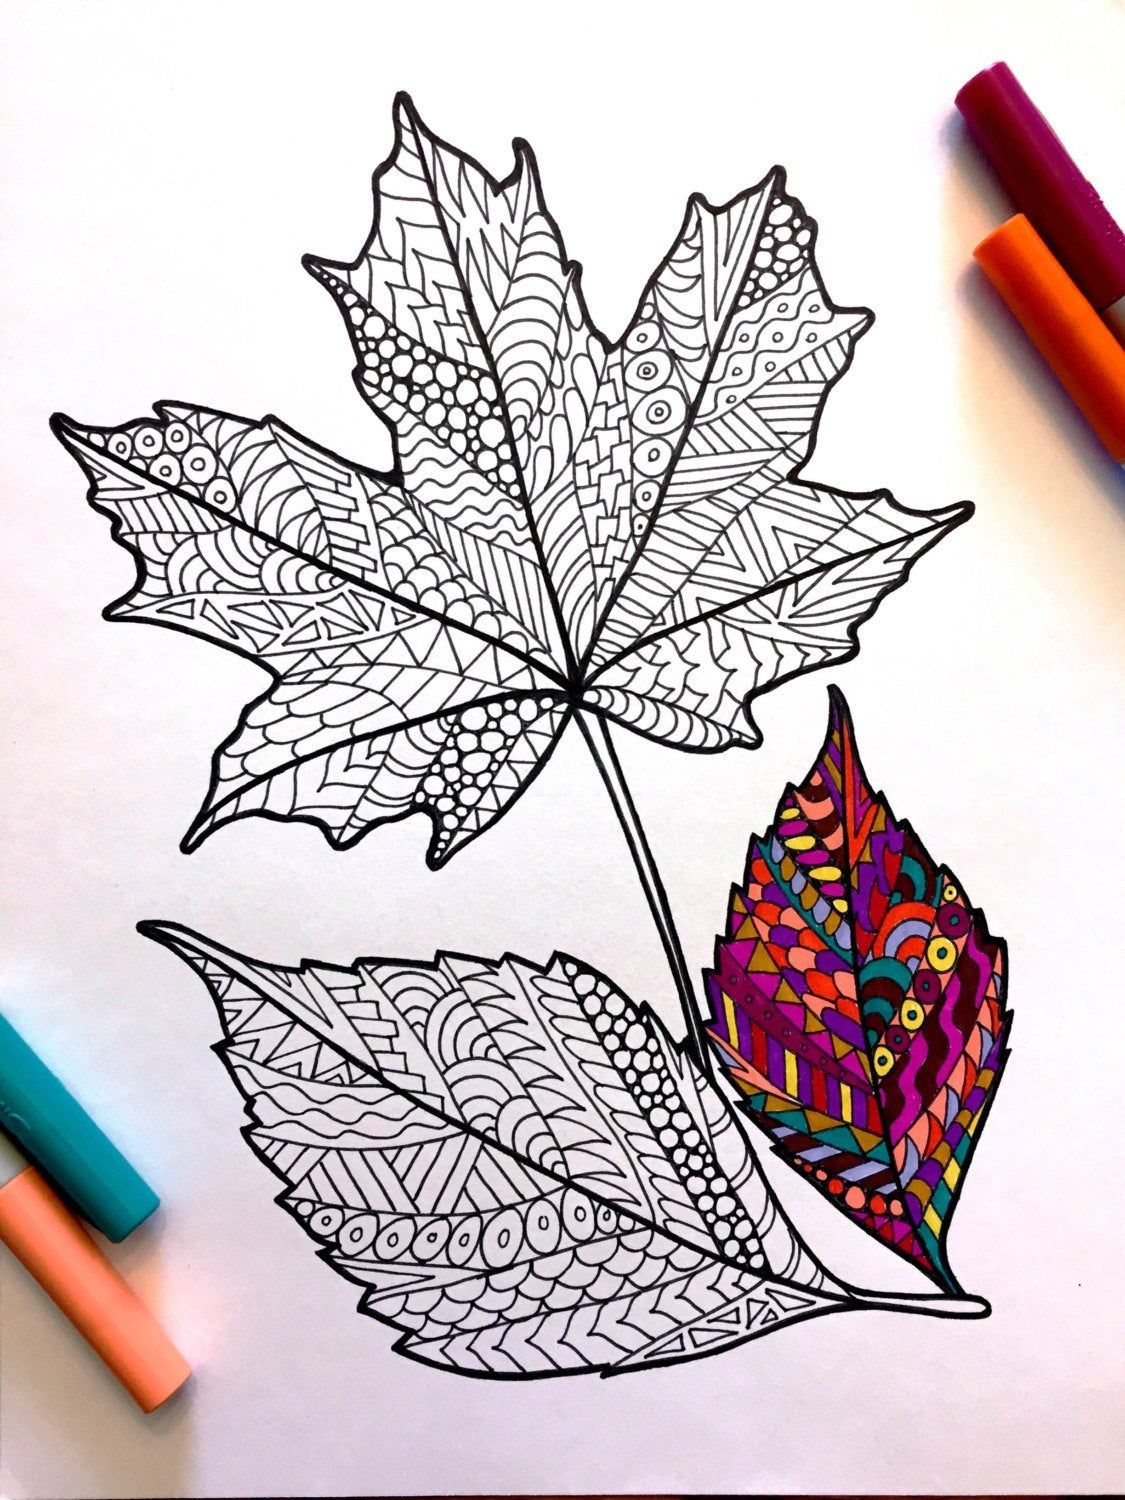 Fall Leaves - PDF Zentangle Coloring Page | Doodle art ...